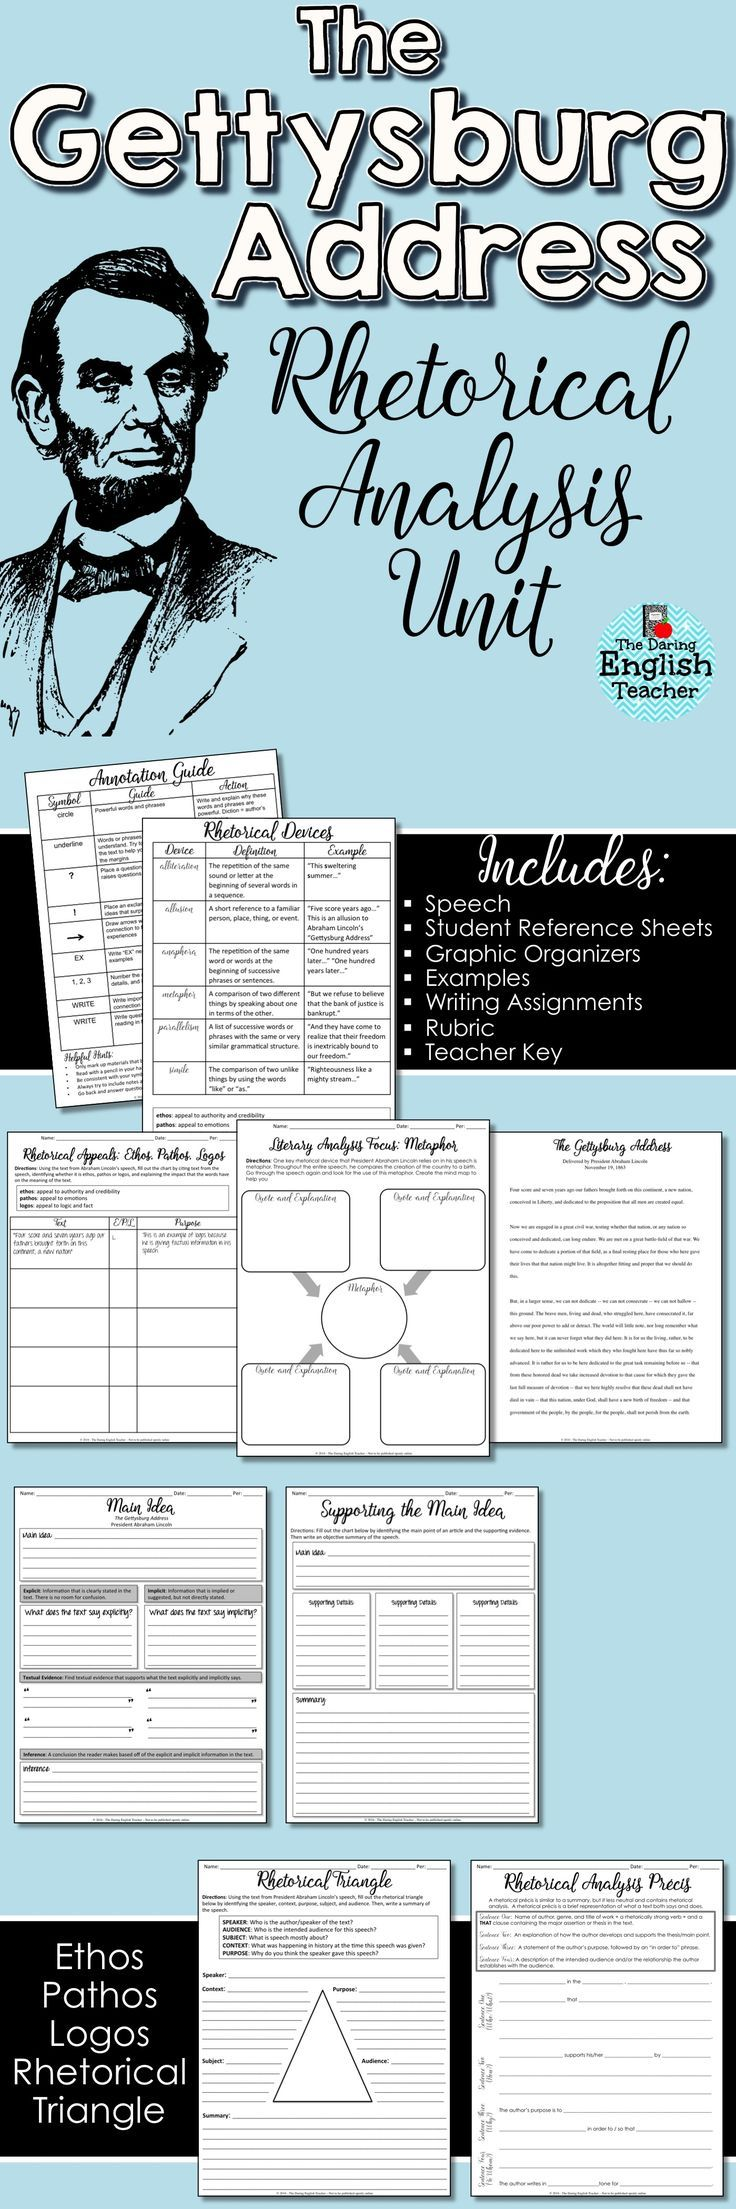 625 best Teaching images on Pinterest | Classroom organization ...